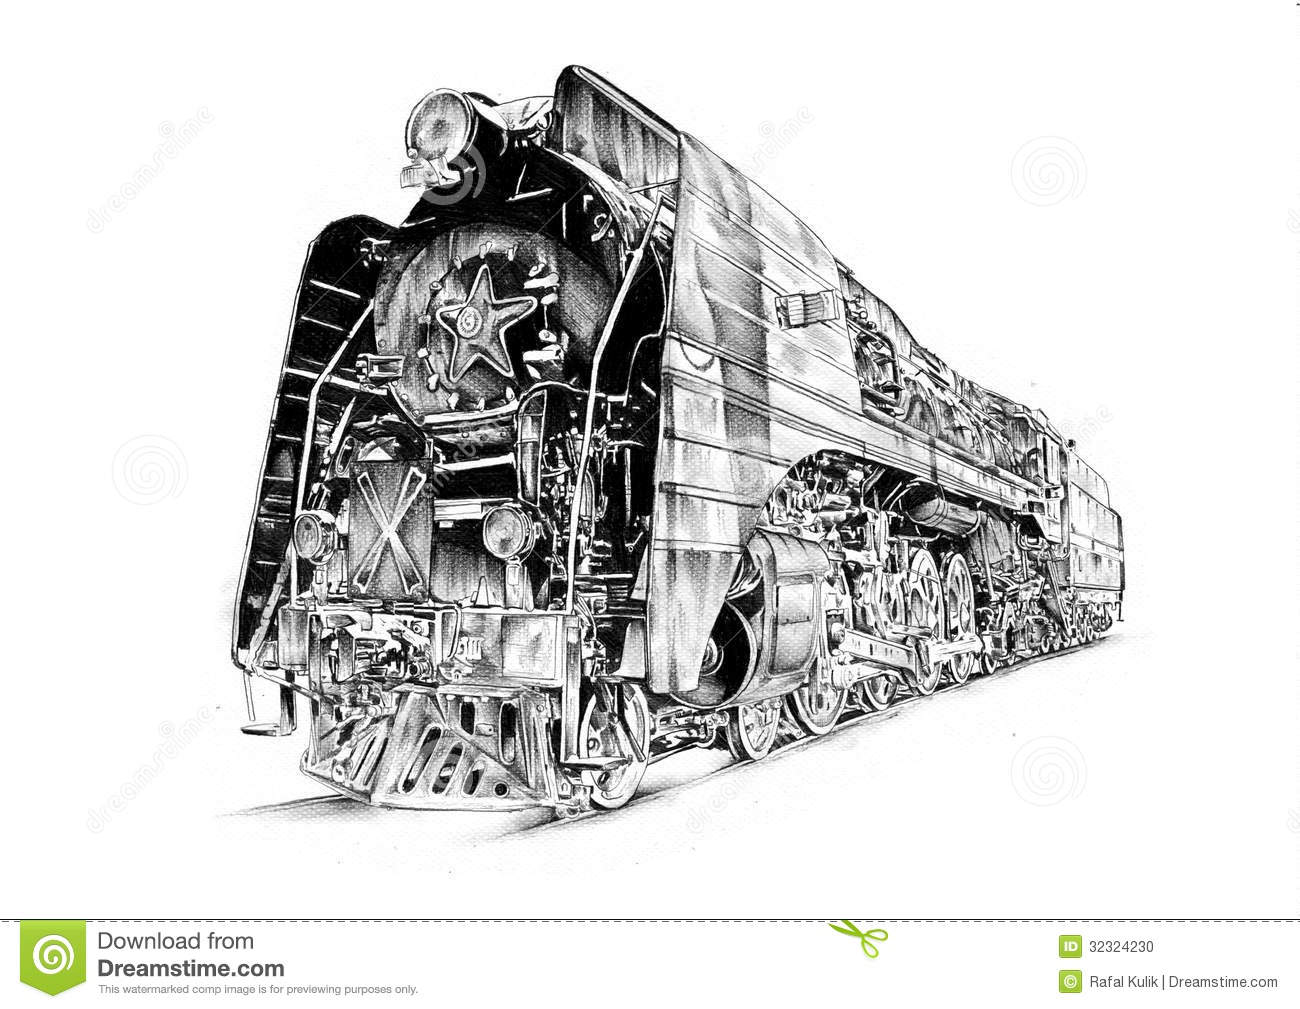 Art Design Drawing : Steam engine art design drawing stock photo image